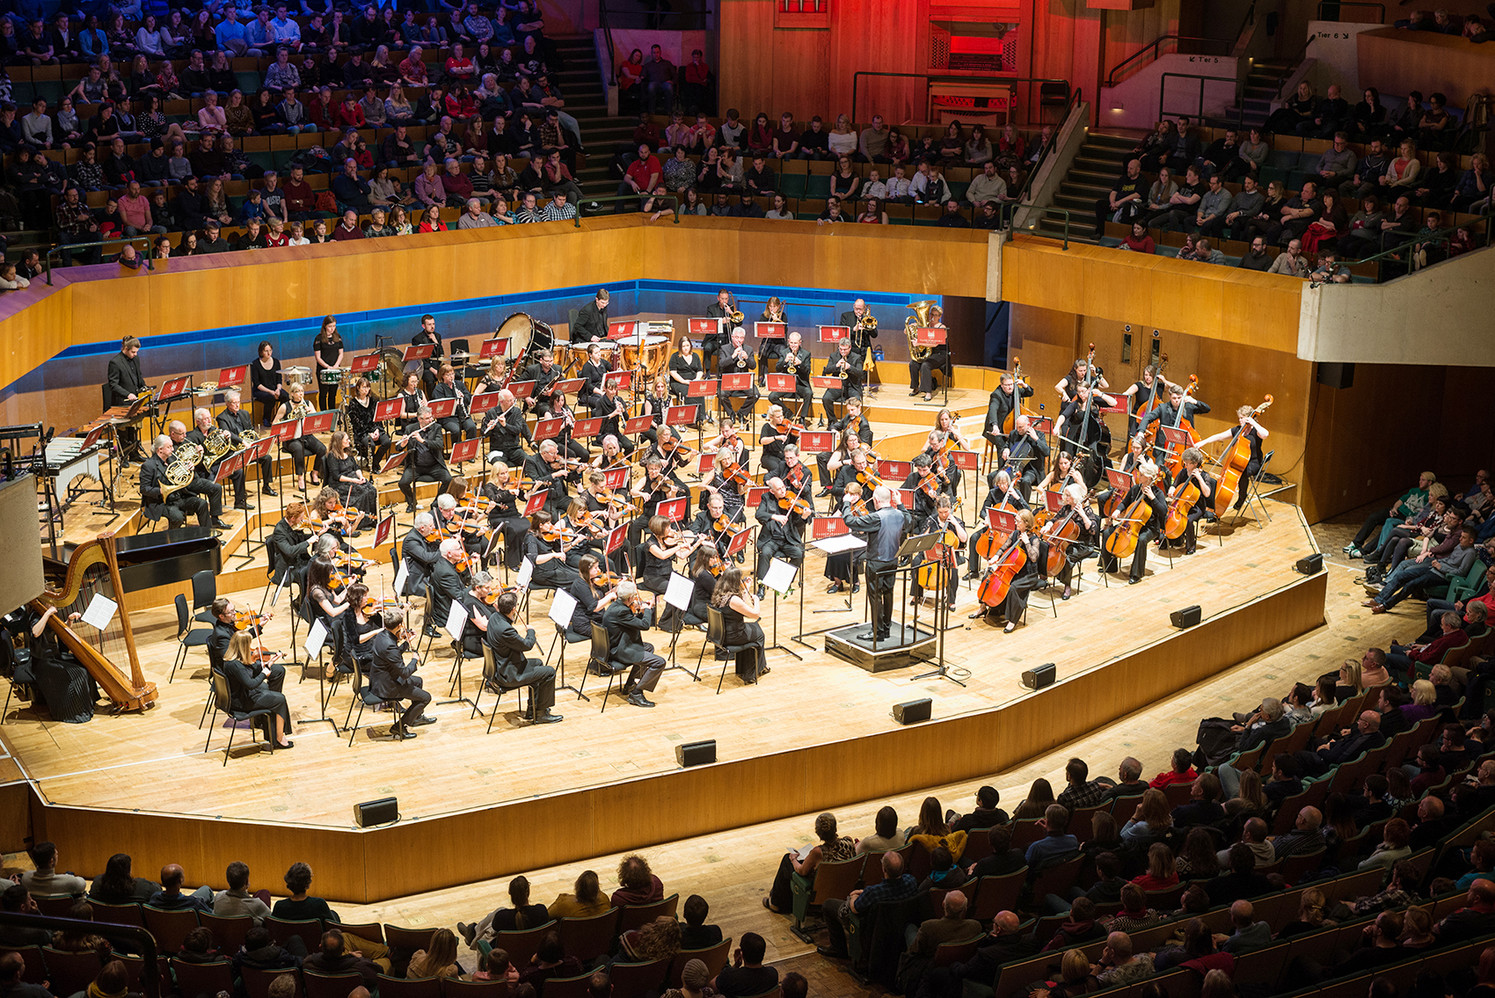 Cardiff Philharmonic Orchestra